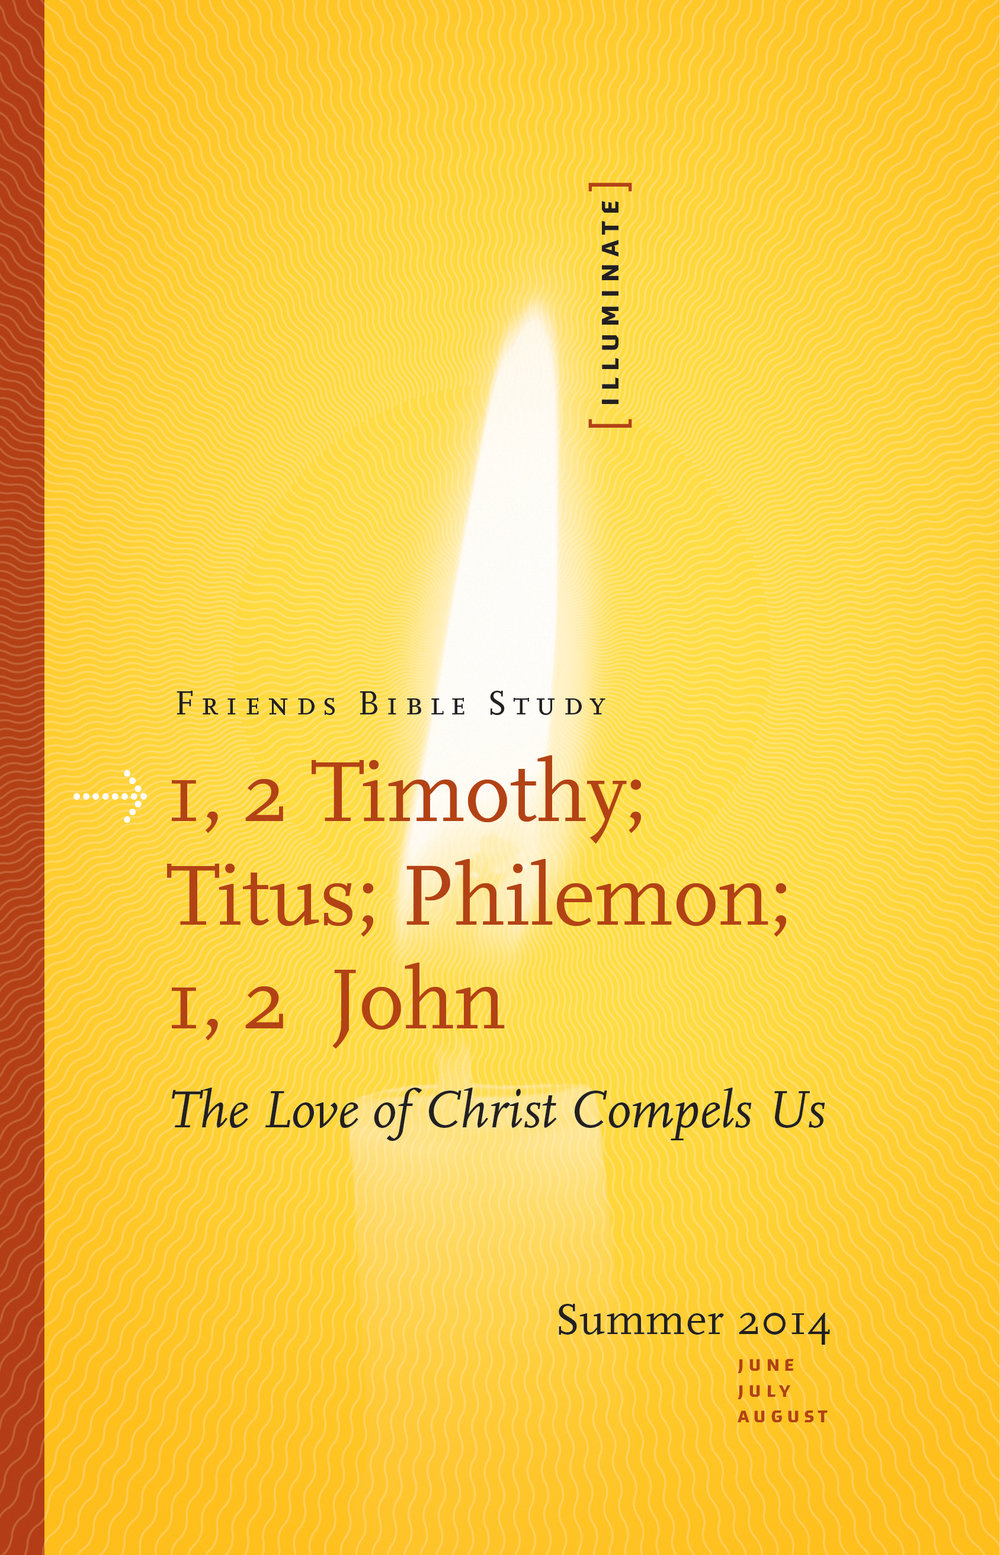 1, 2 Timothy; Titus; Philemon; 1, 2 John